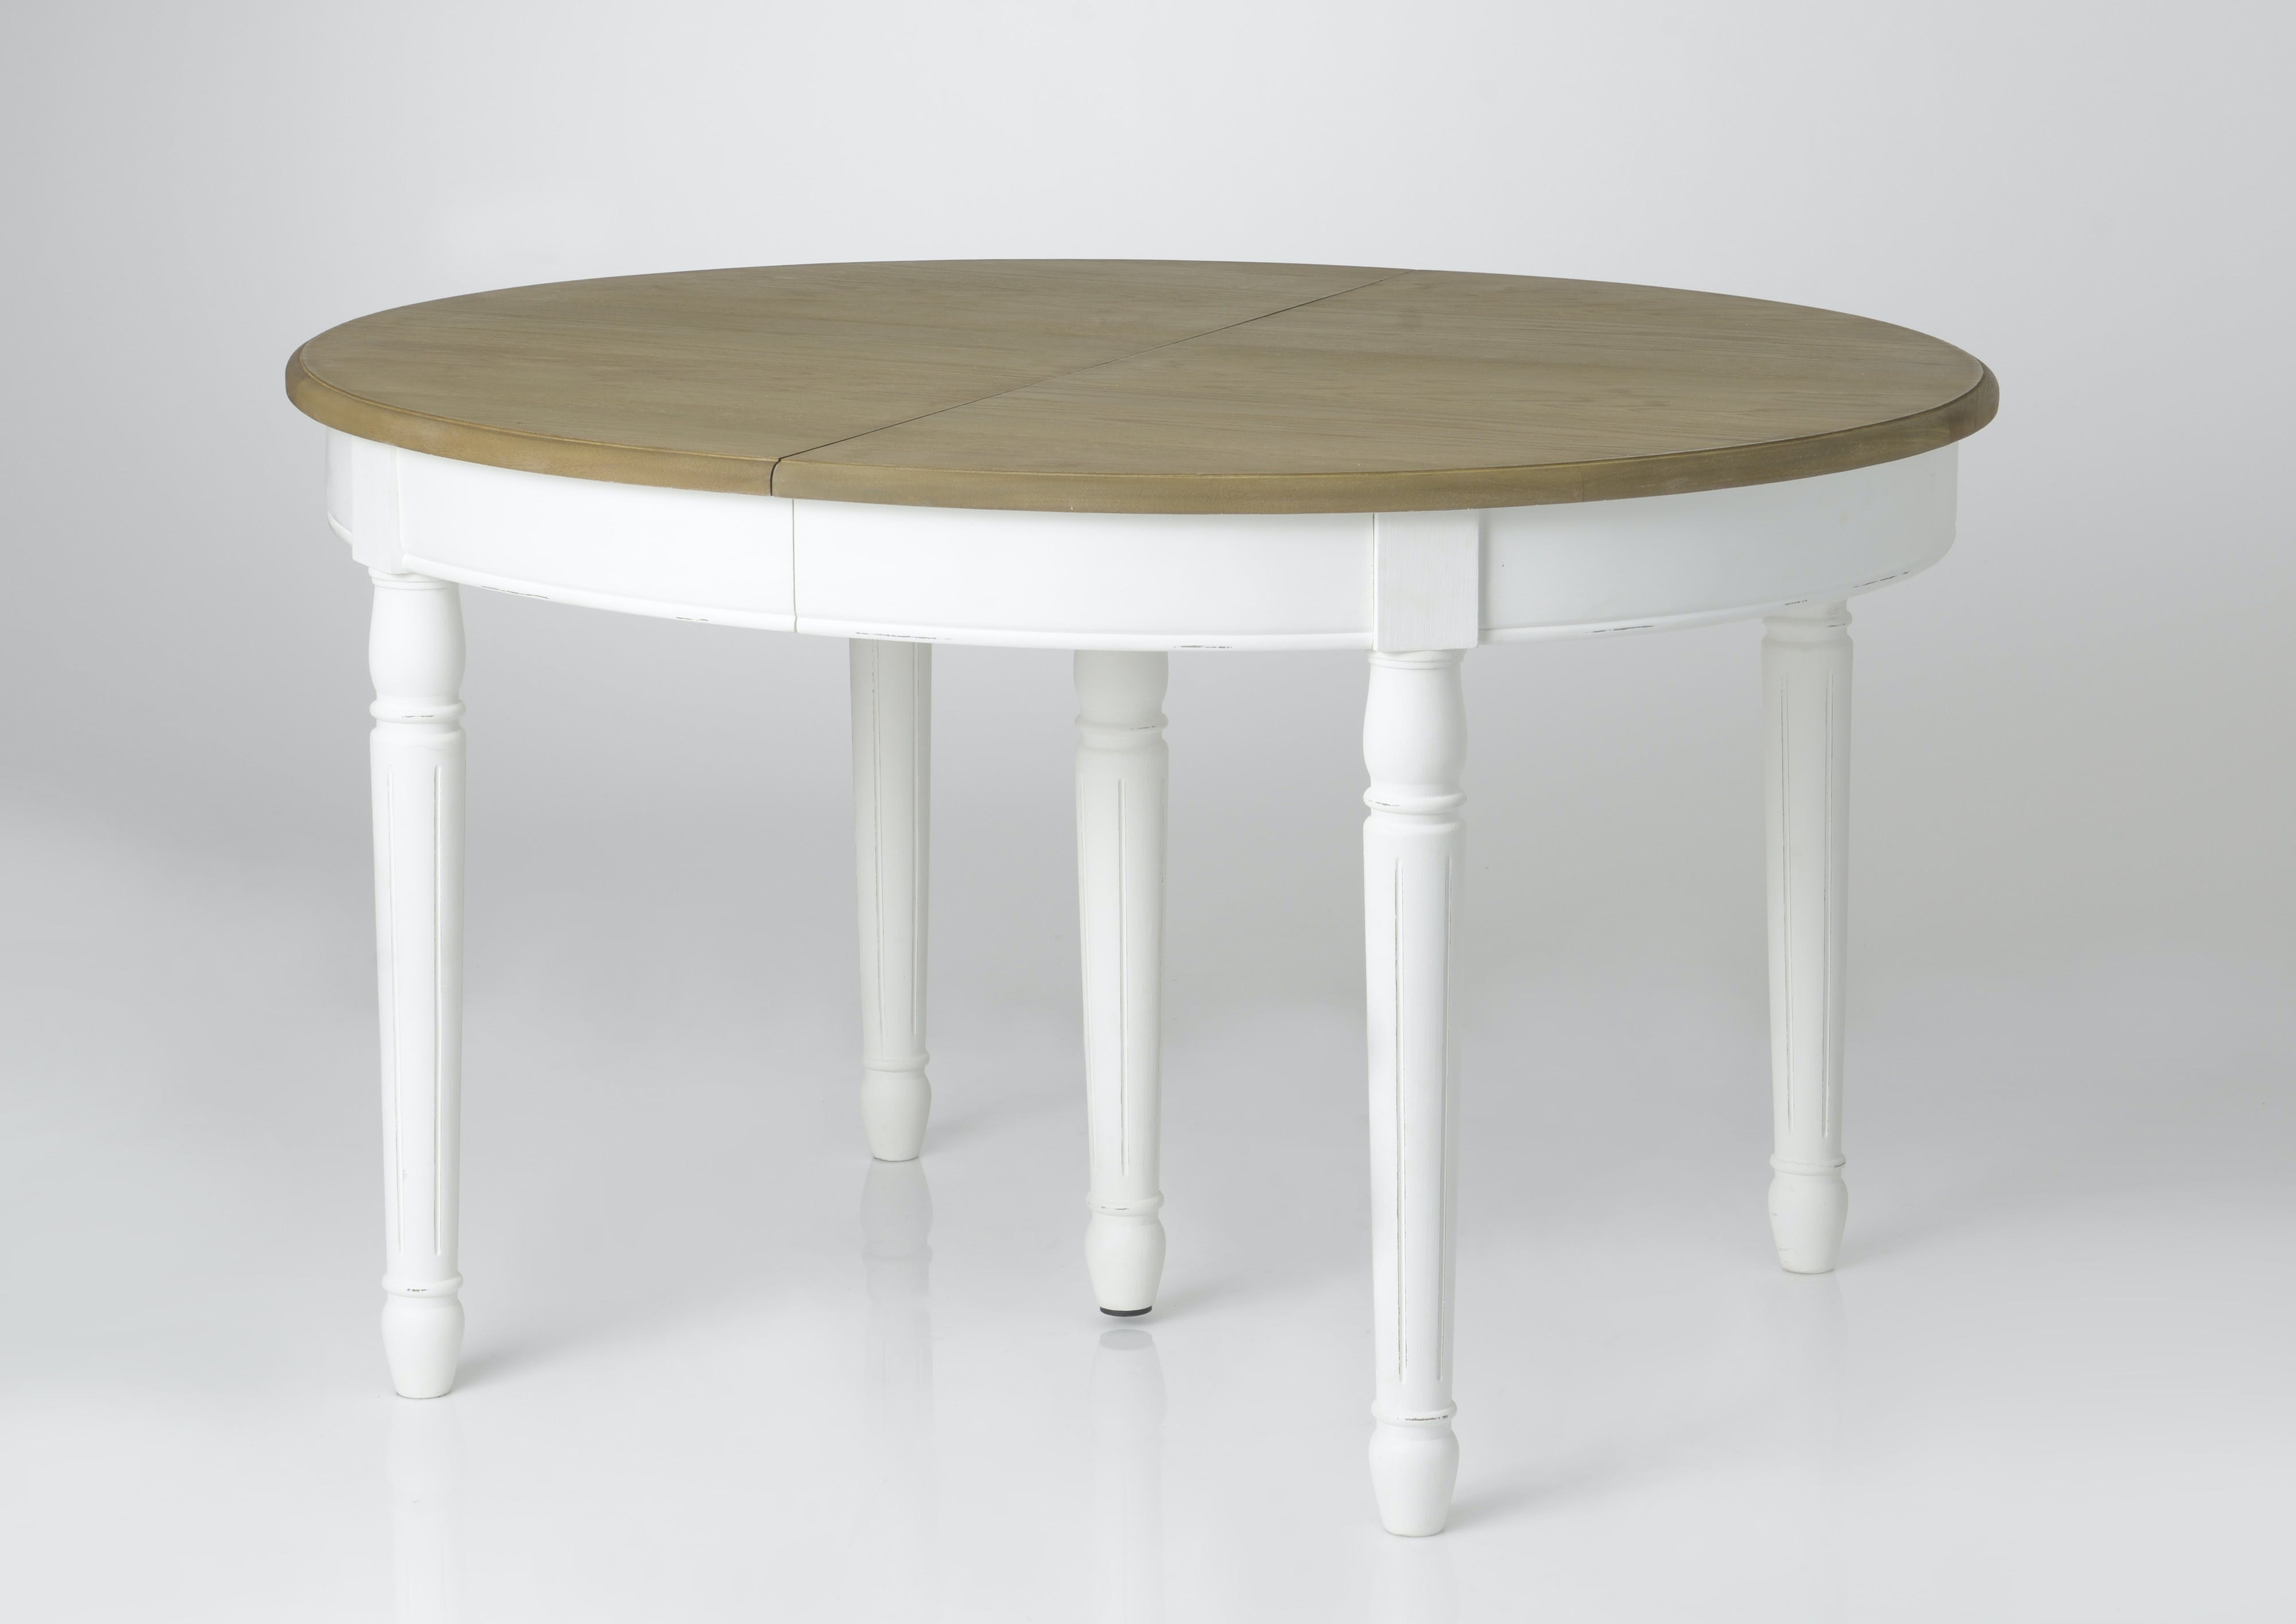 Table à manger ovale extensible bois massif blanc PRAGUE